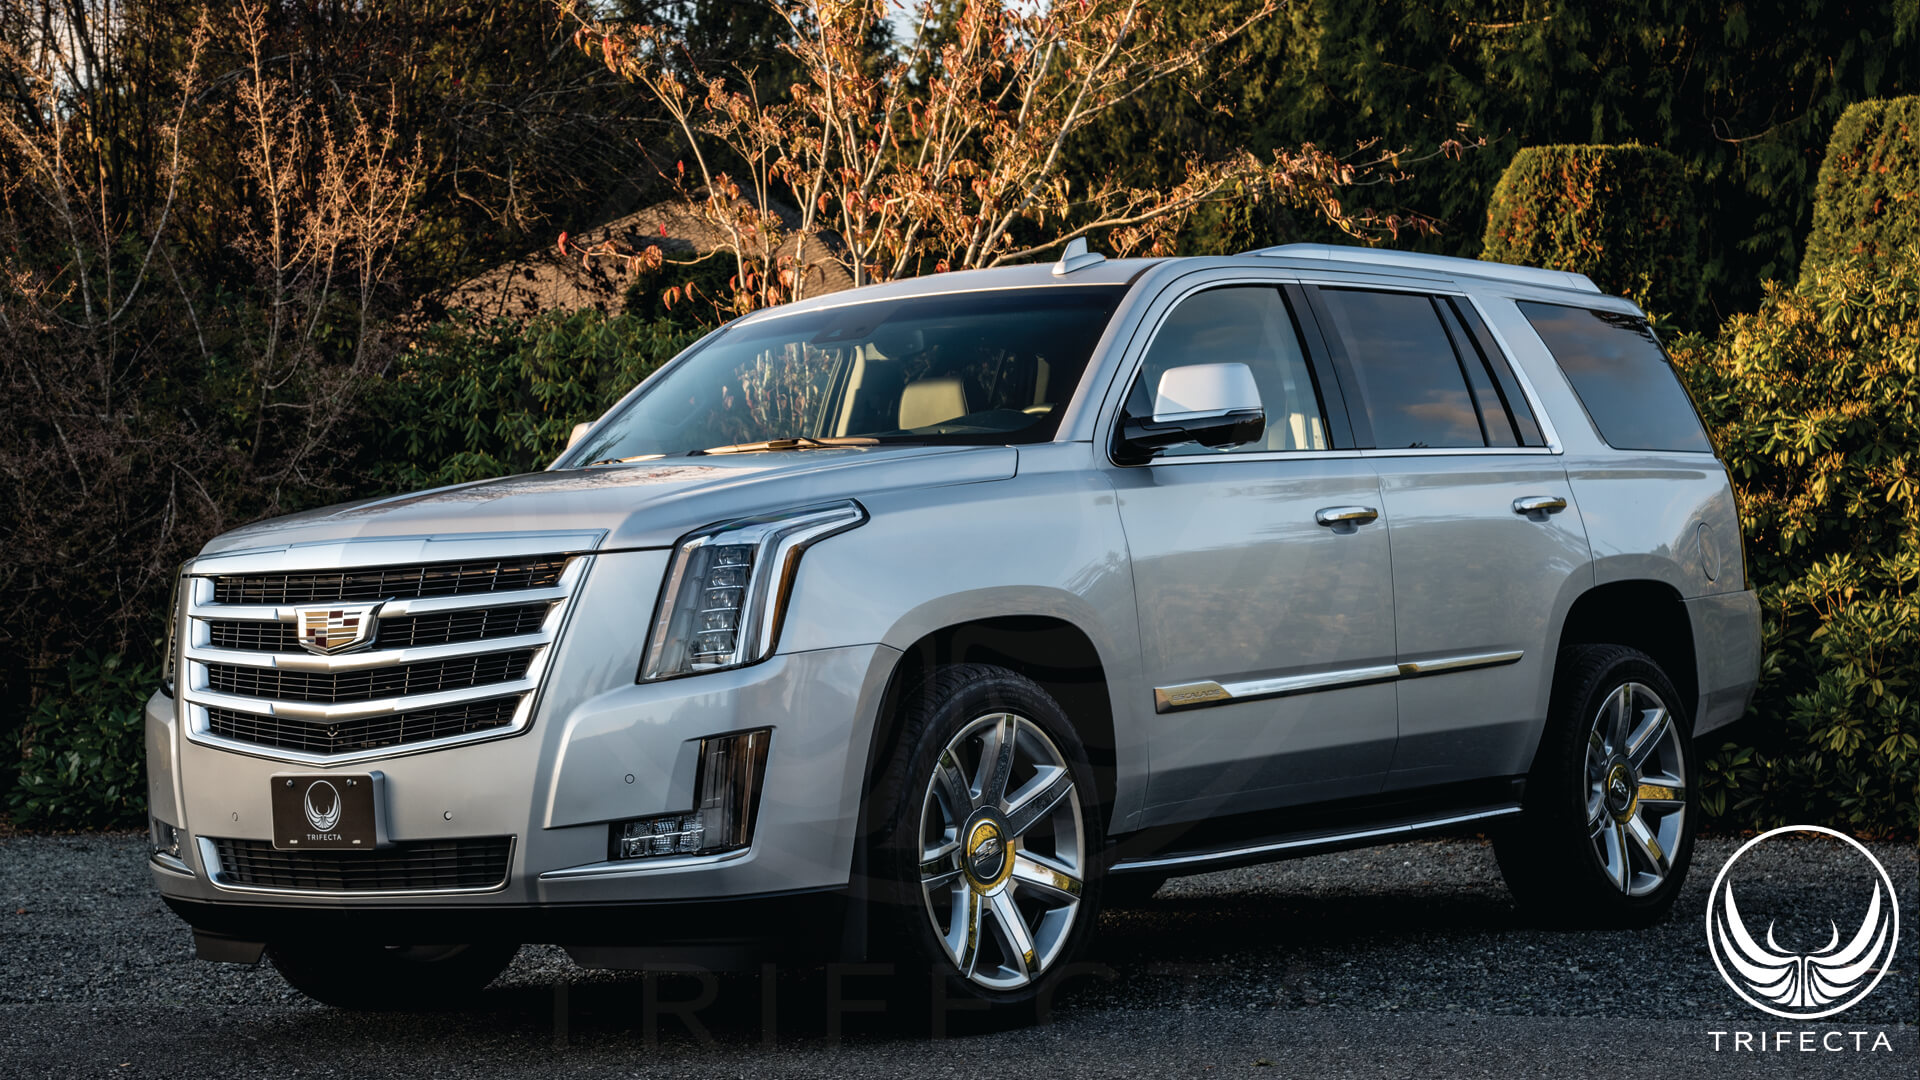 variant gallery chevrolet for chevy yukon gmc photo news and suvs newyorkreveal road sideview tahoe off